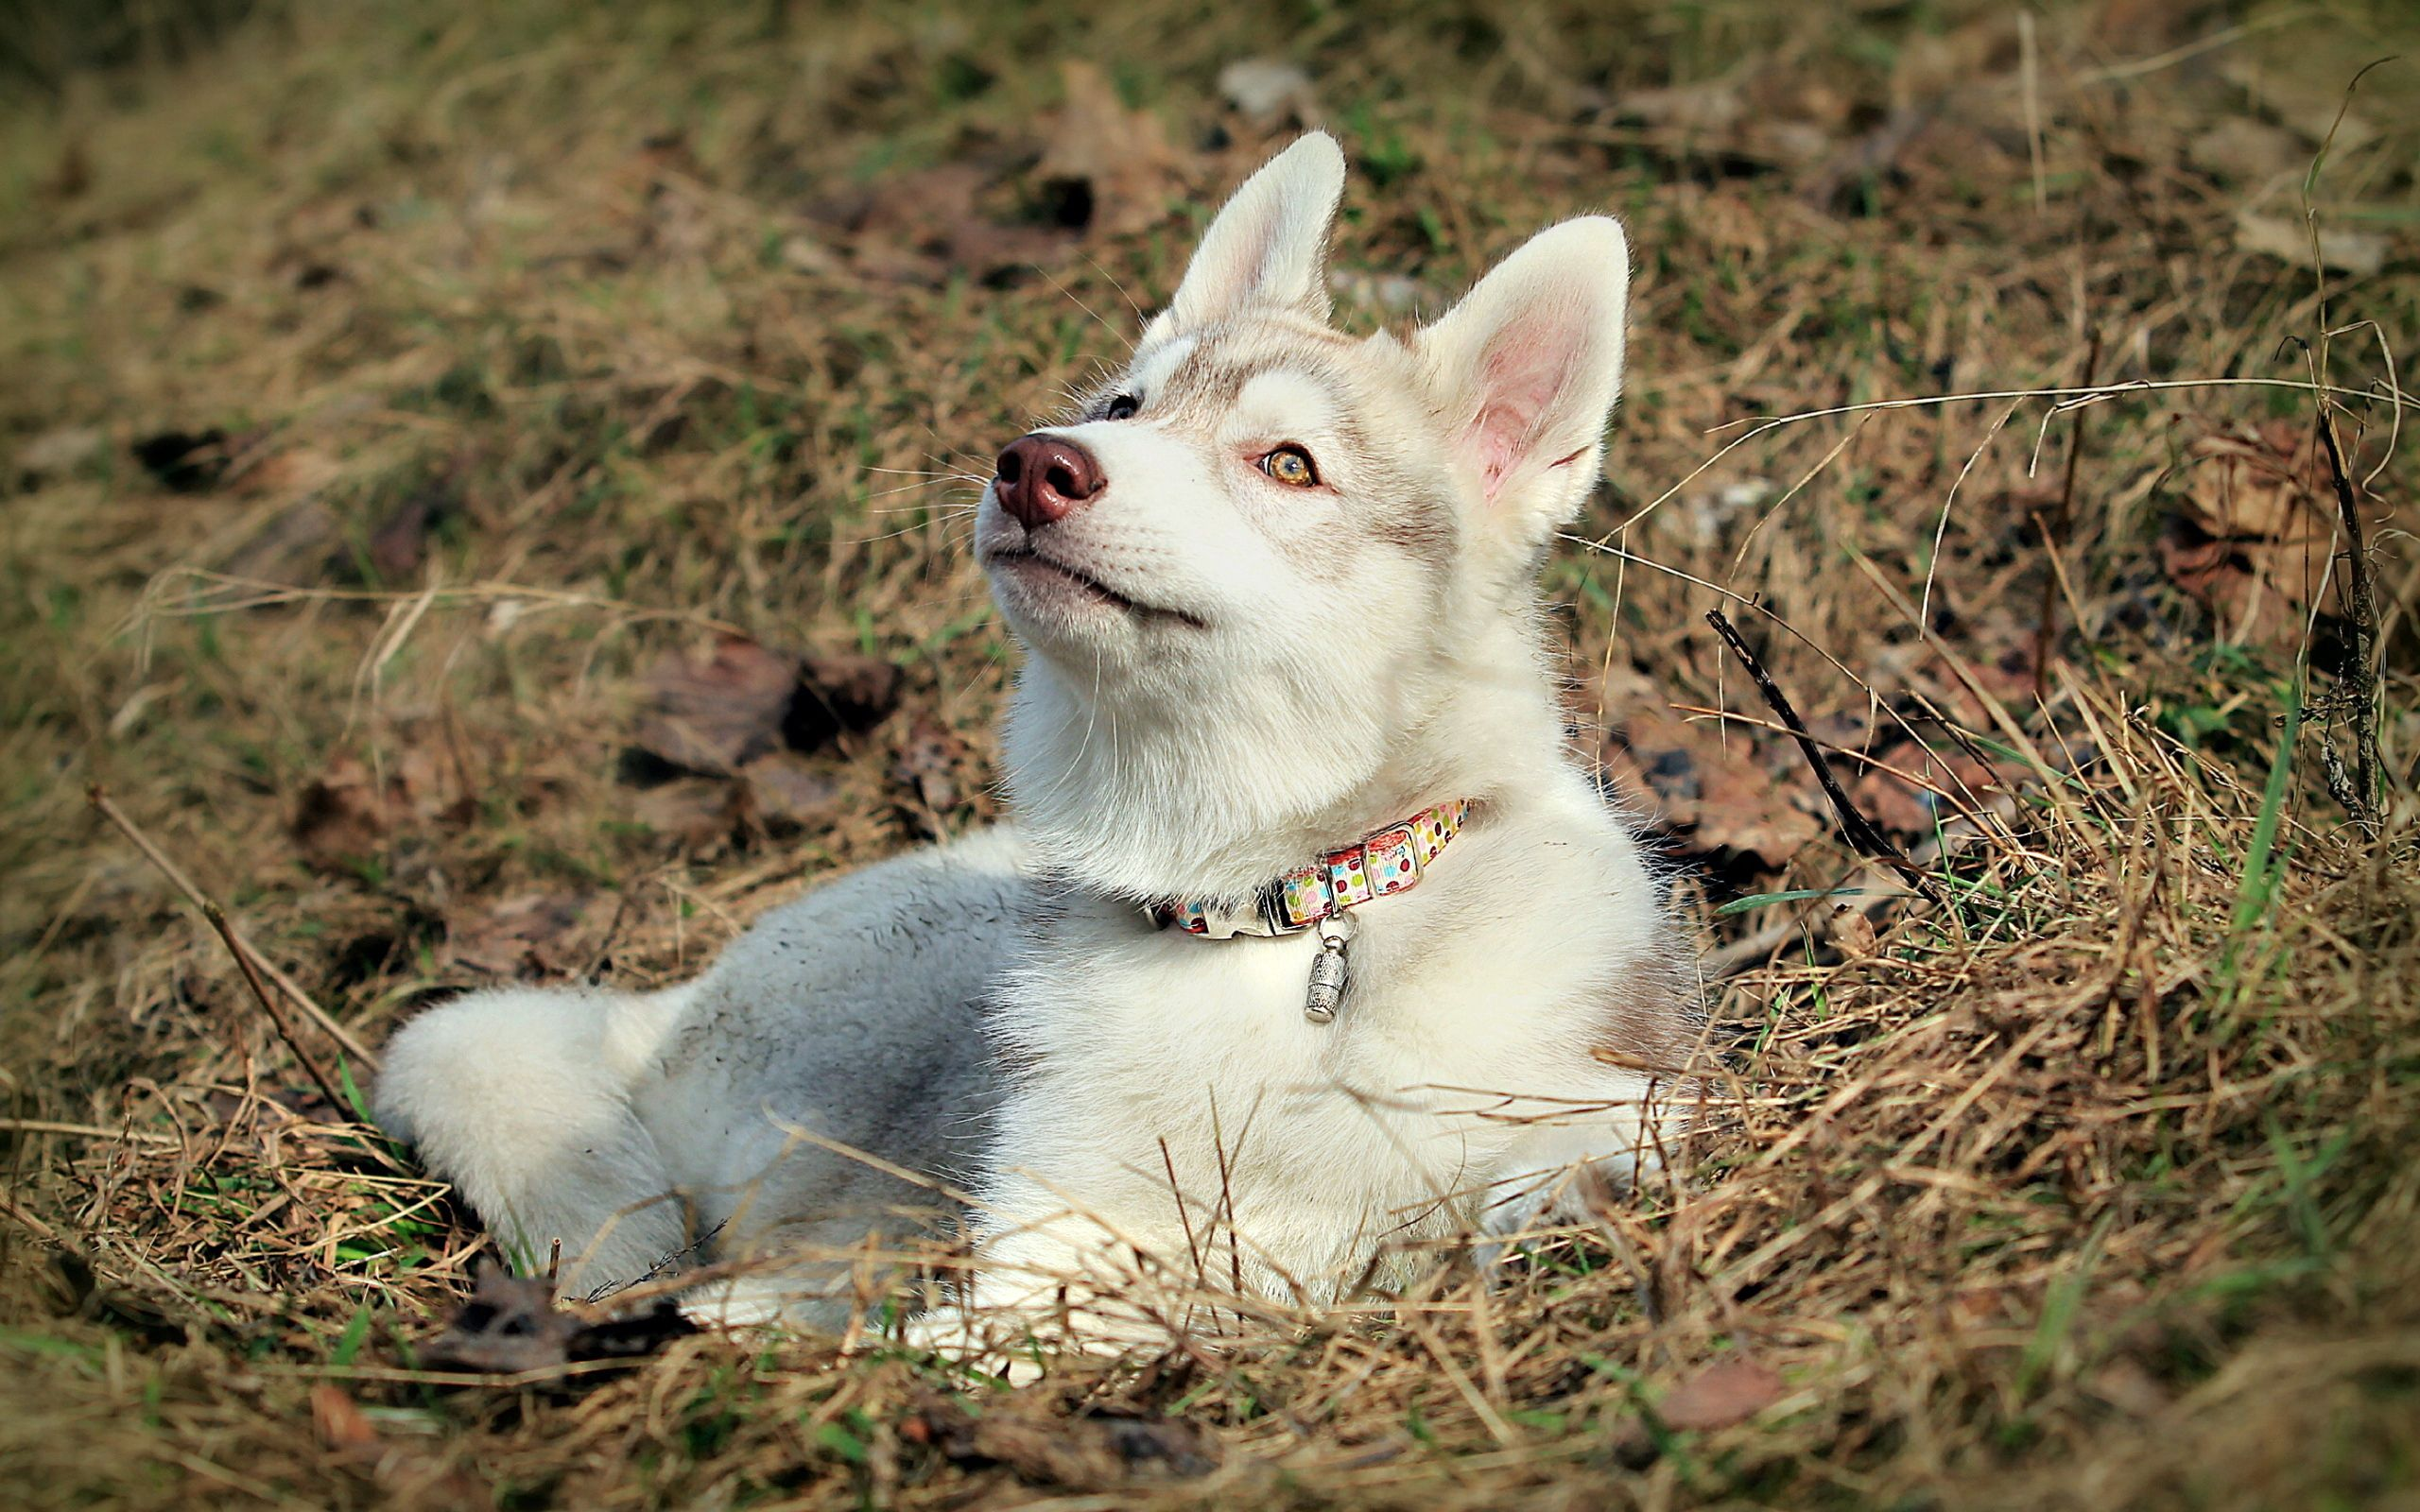 107610 download wallpaper Animals, Husky, Haska, Dog, Muzzle, Ears screensavers and pictures for free